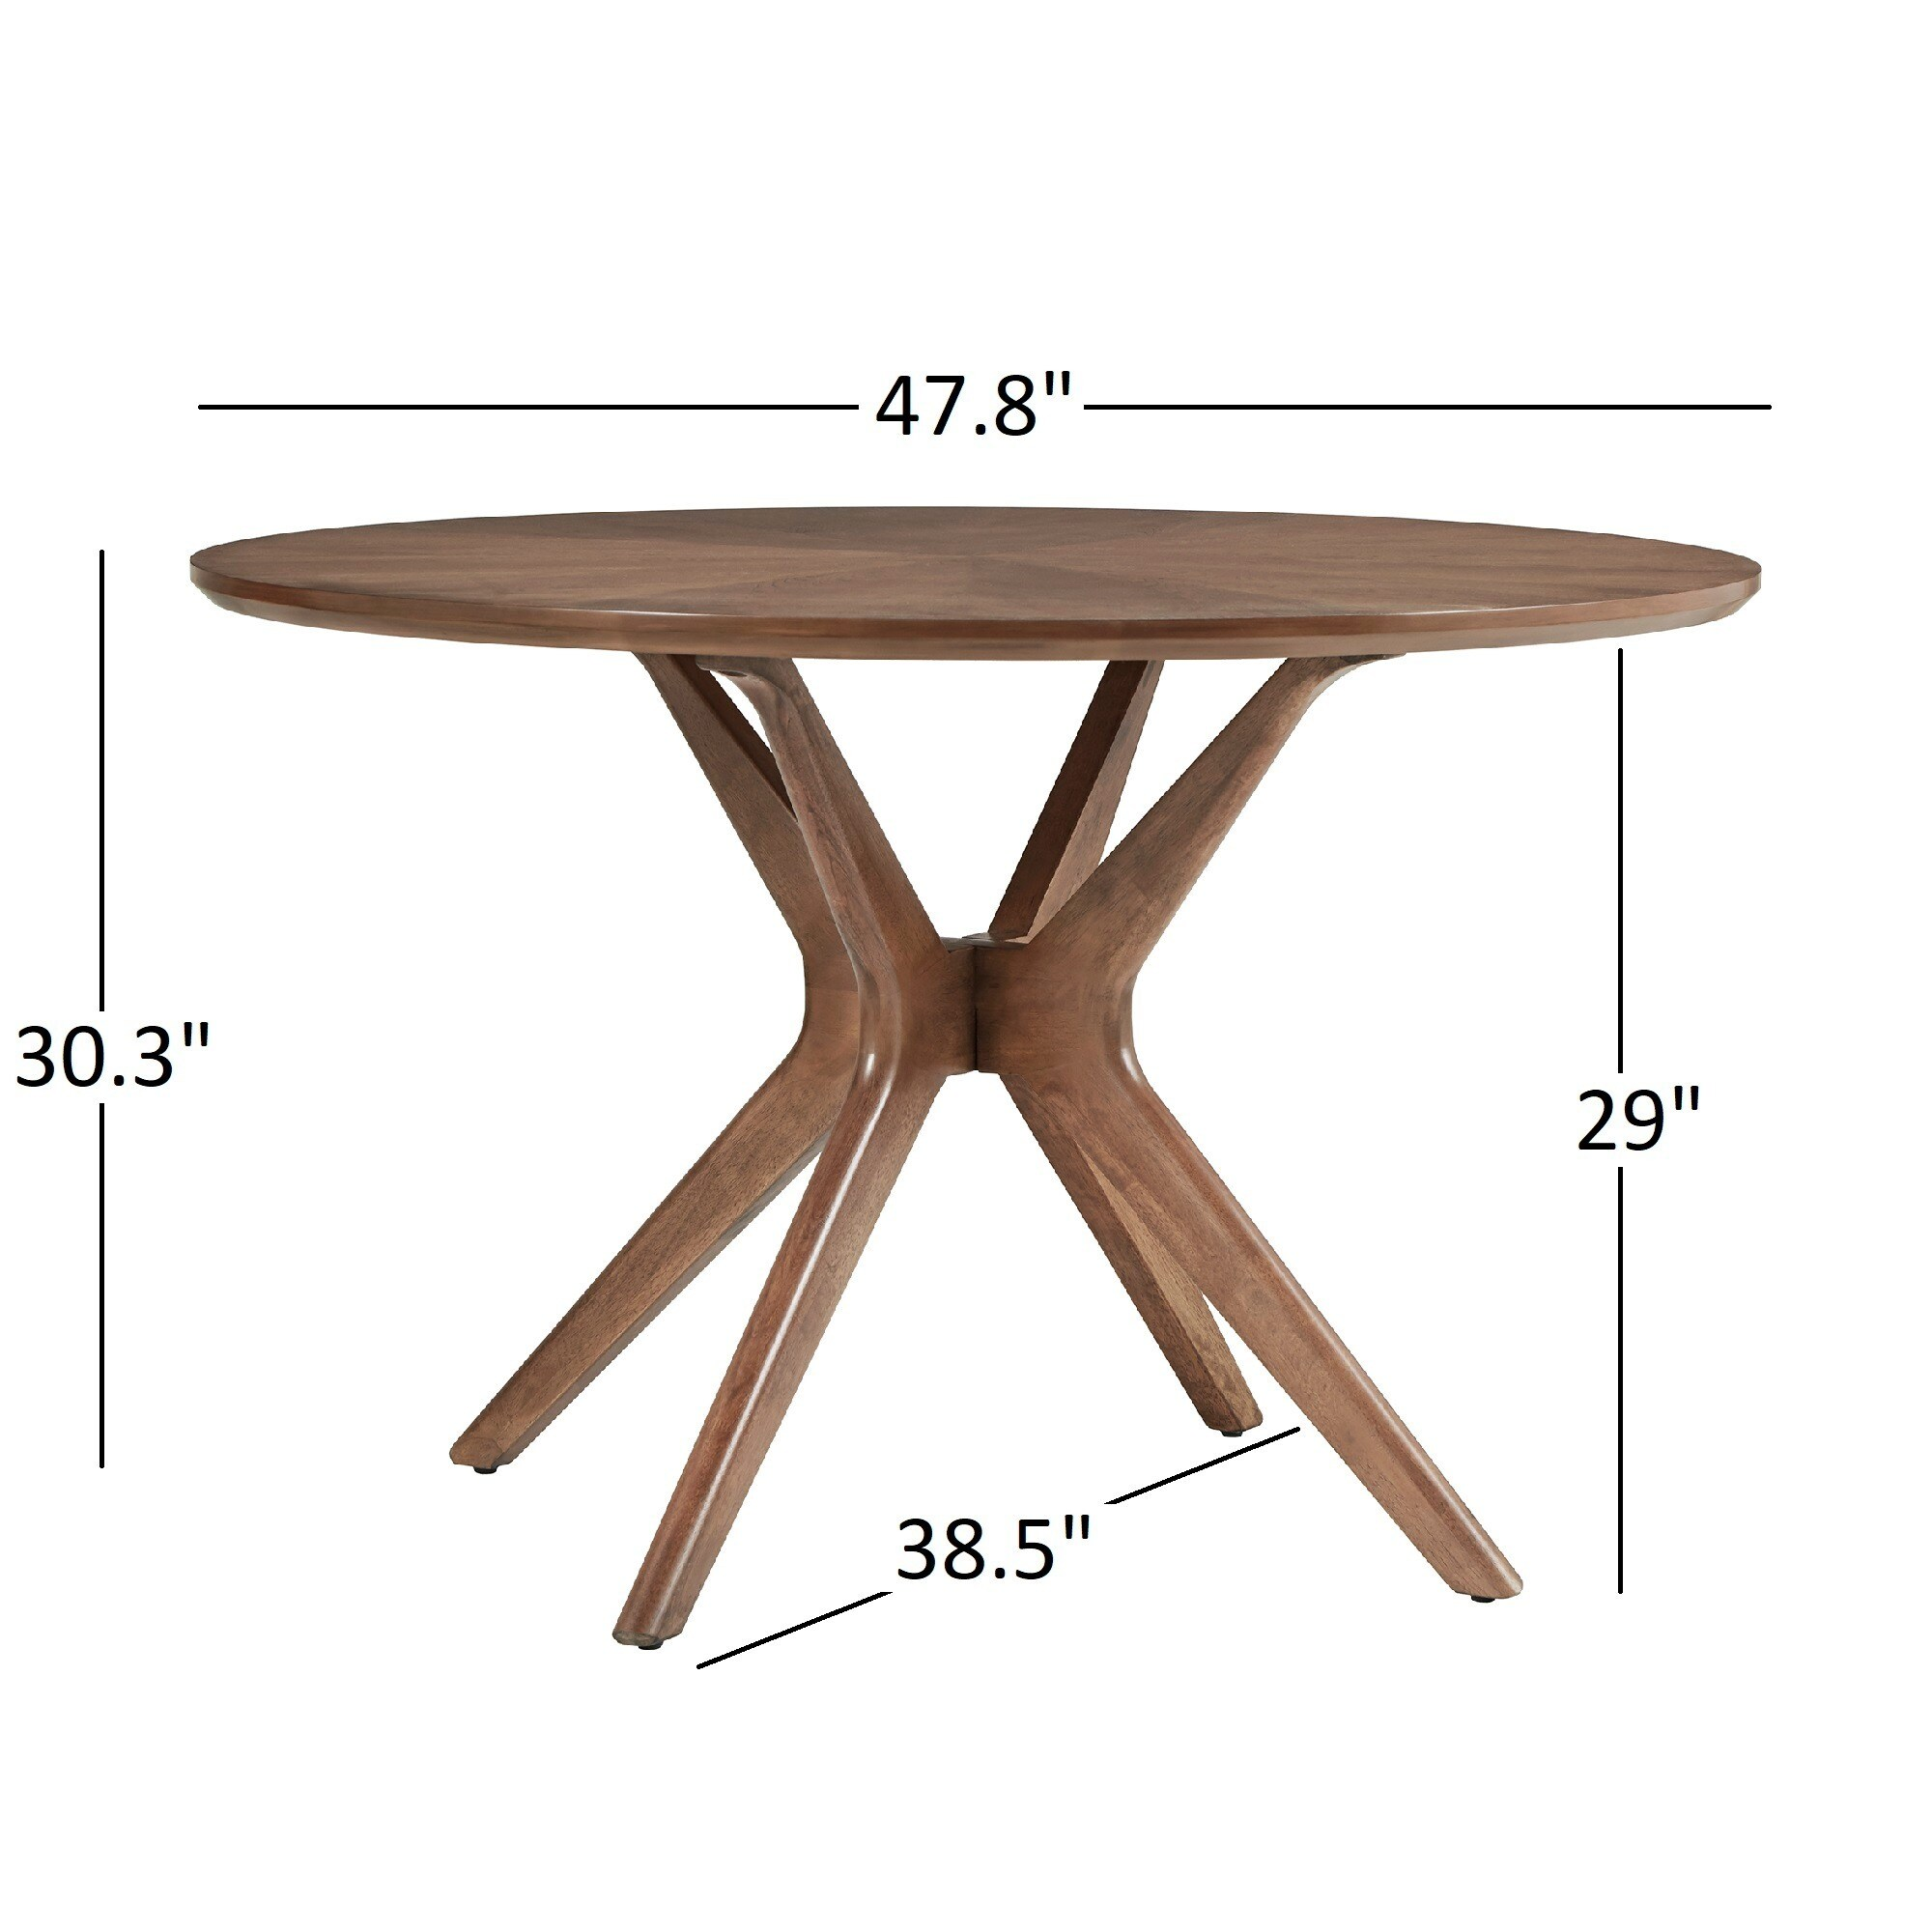 utrails elegant pedestal inch home the design table dining round